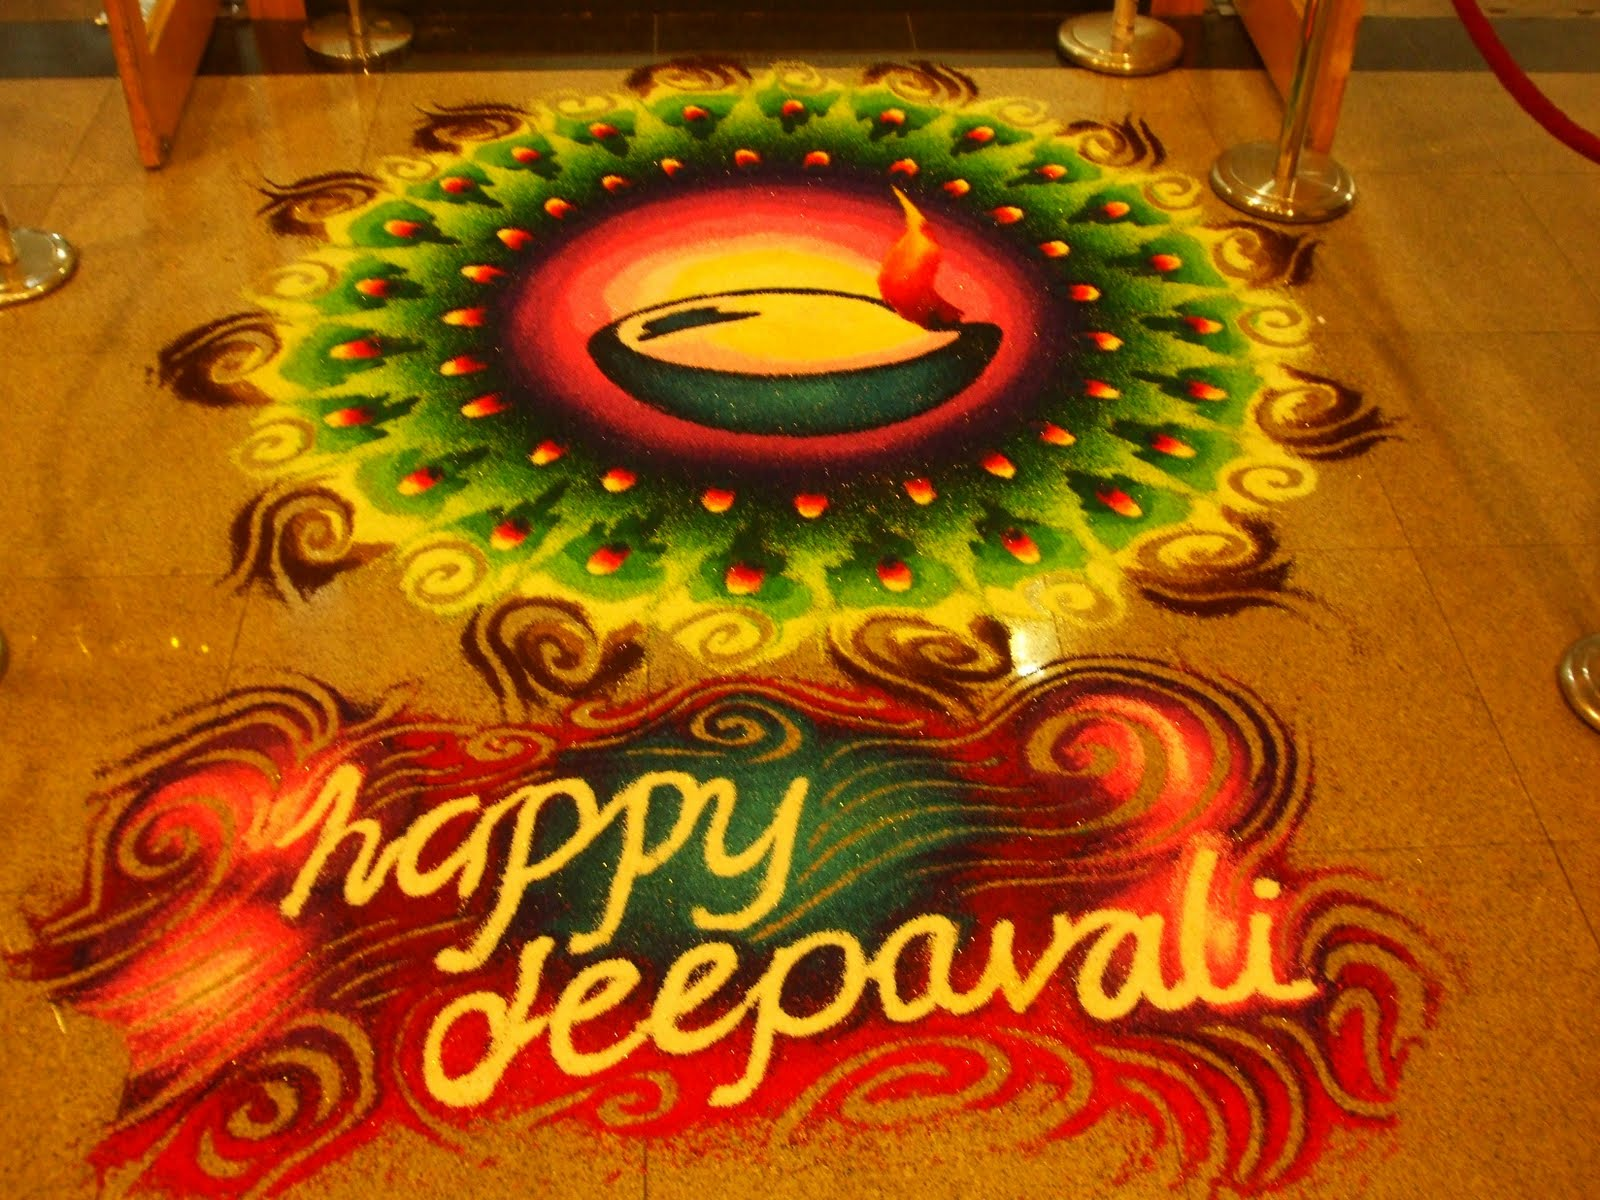 celebrated diwali essay Diwali essay in english diwali is one the most important festival of hindus it is celebrated with great enthusiasm throughout the length and breadth of india.